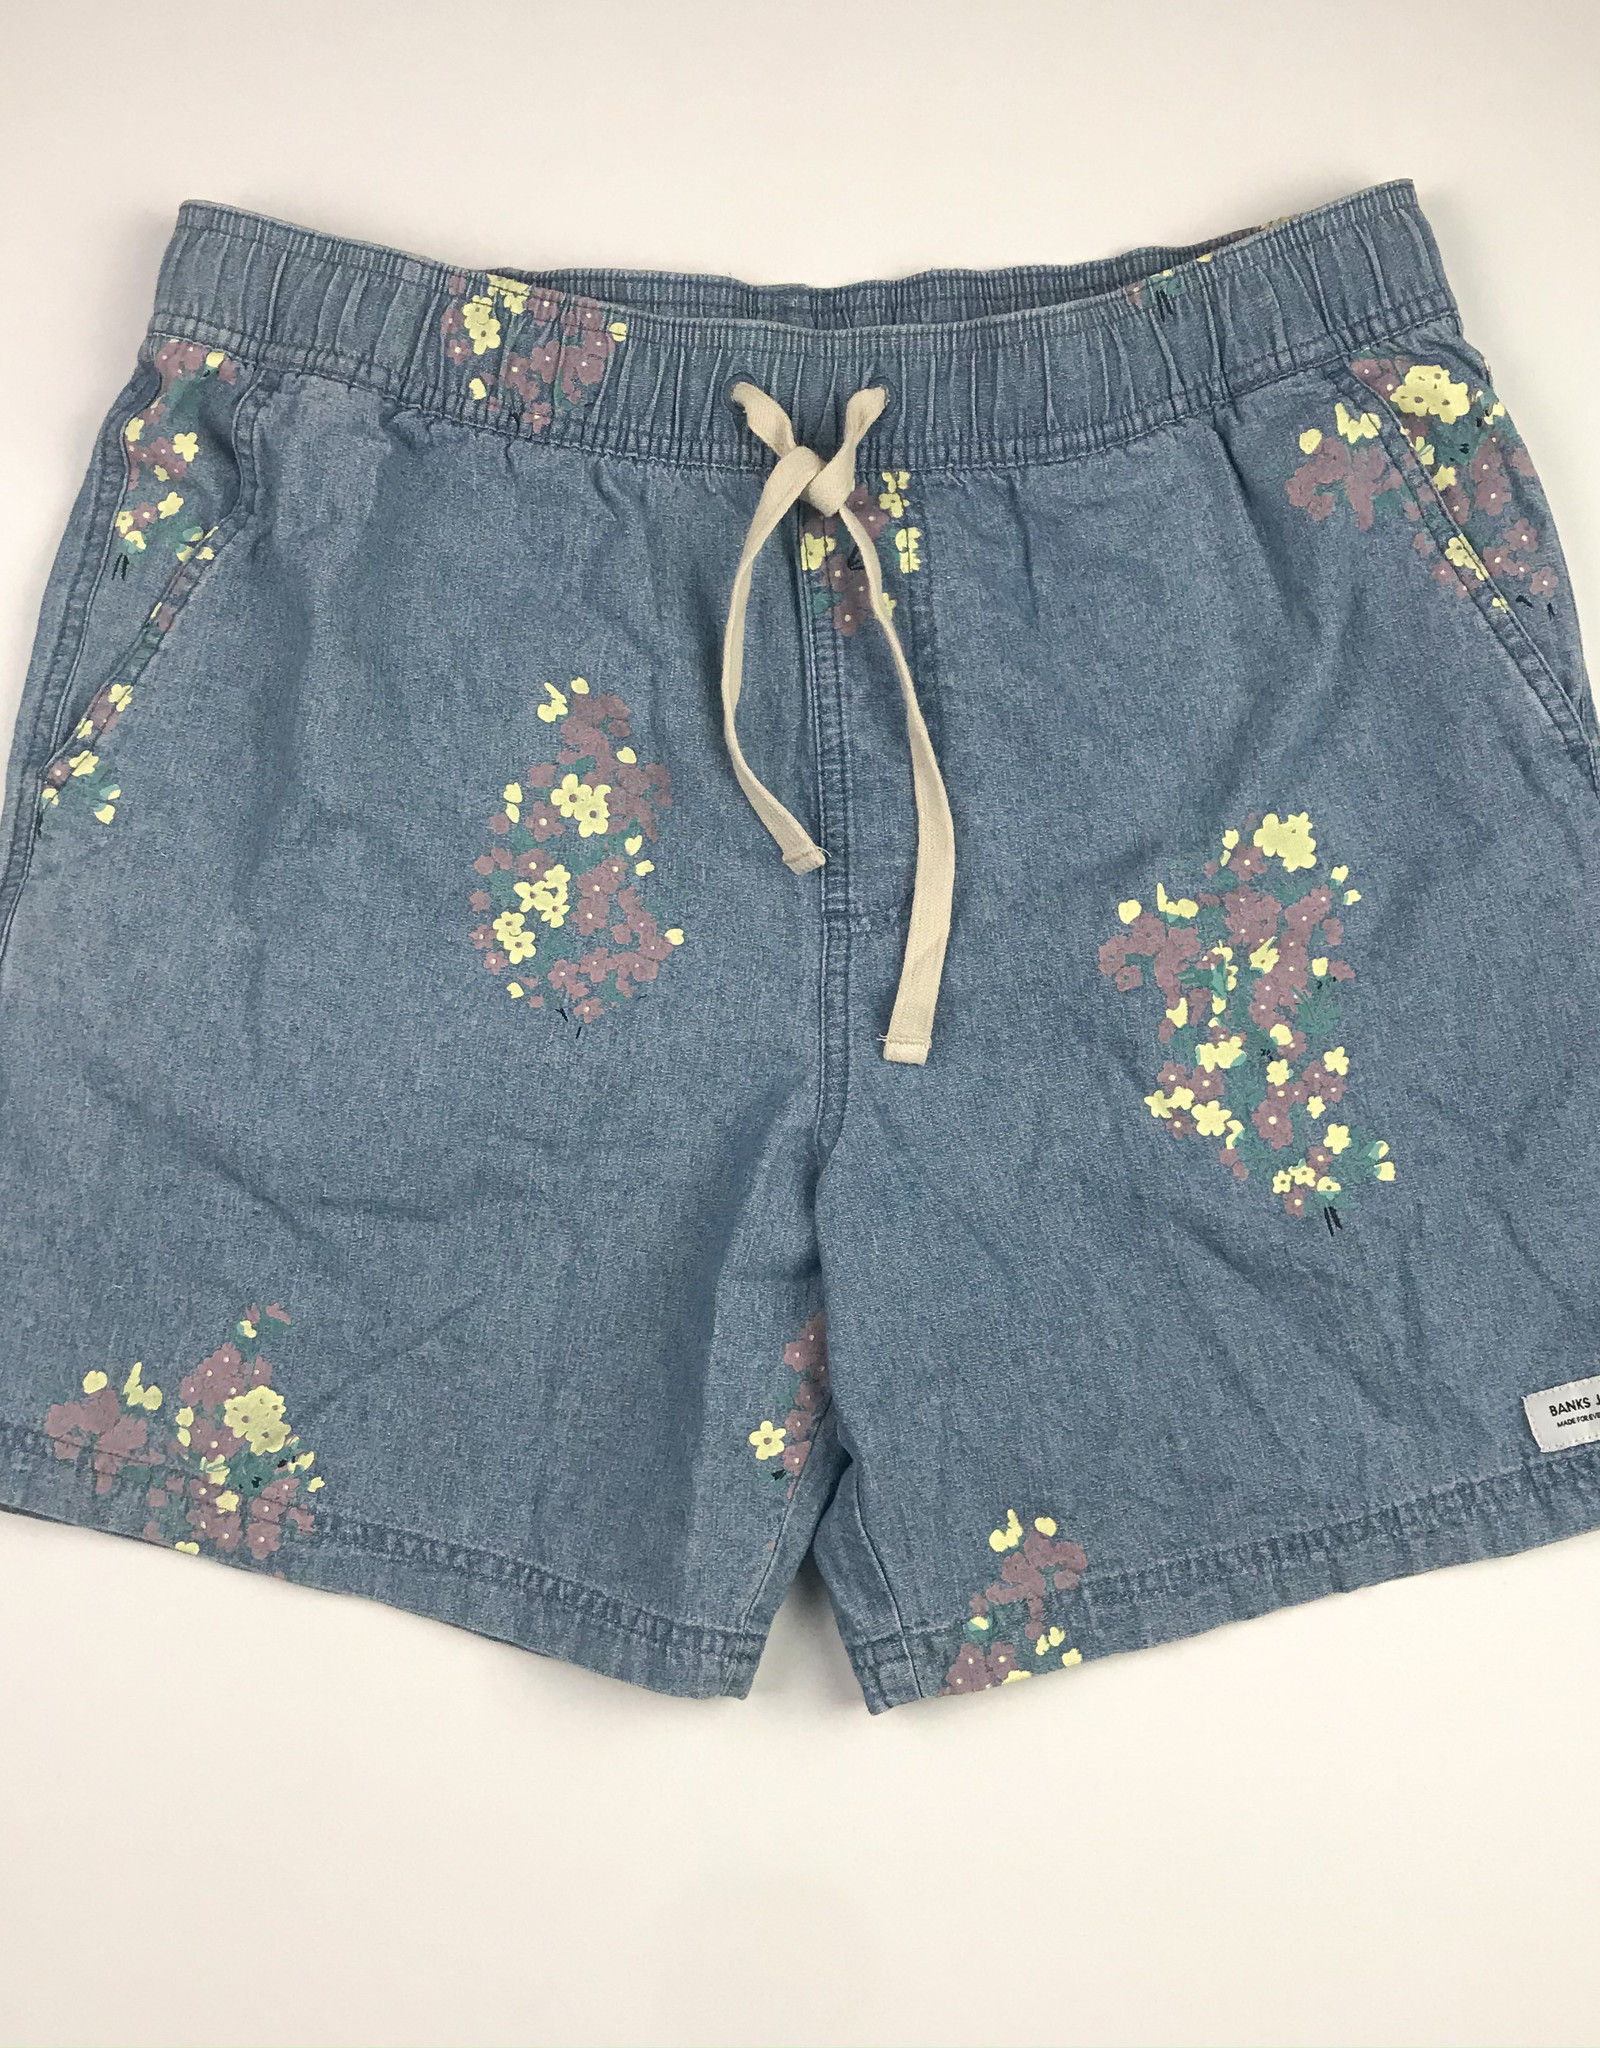 BANKS JOURNAL BANKS JOURNAL FLOWERLY CHAMBRAY ELASTIC WALKSHORT - GLACIER BLUE